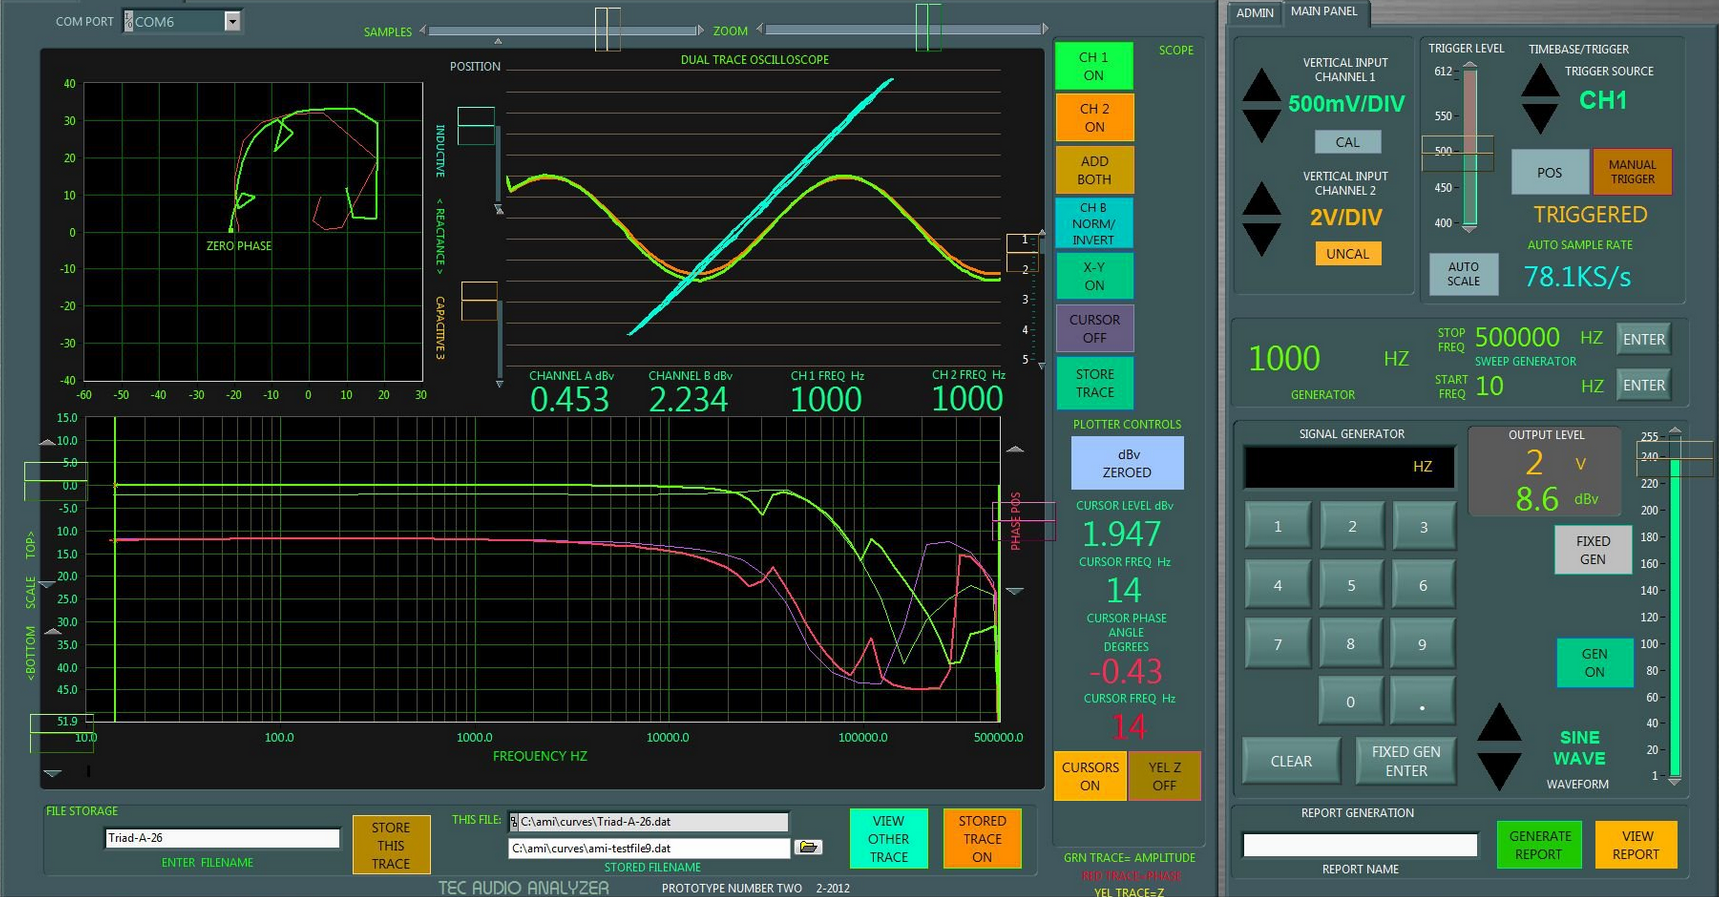 rade bp  -2 1- graphical user interface  gui